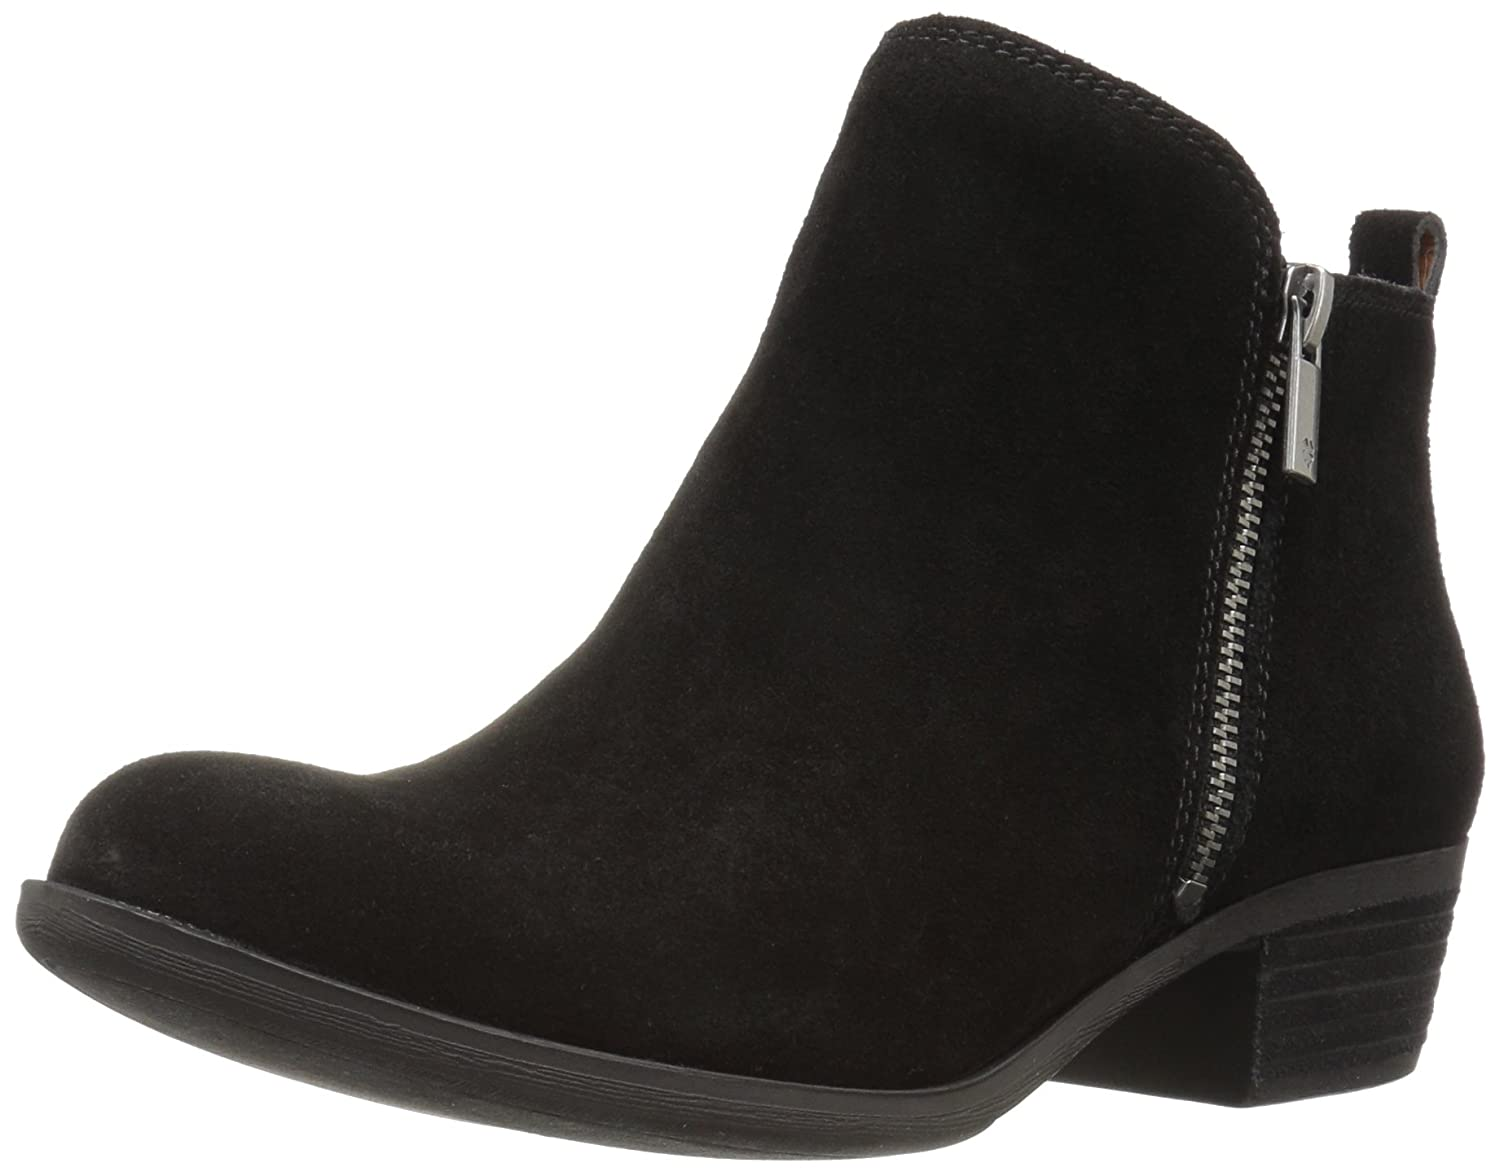 Lucky Brand Women's Basel Boot B01H2IUXG8 12 W US|Black